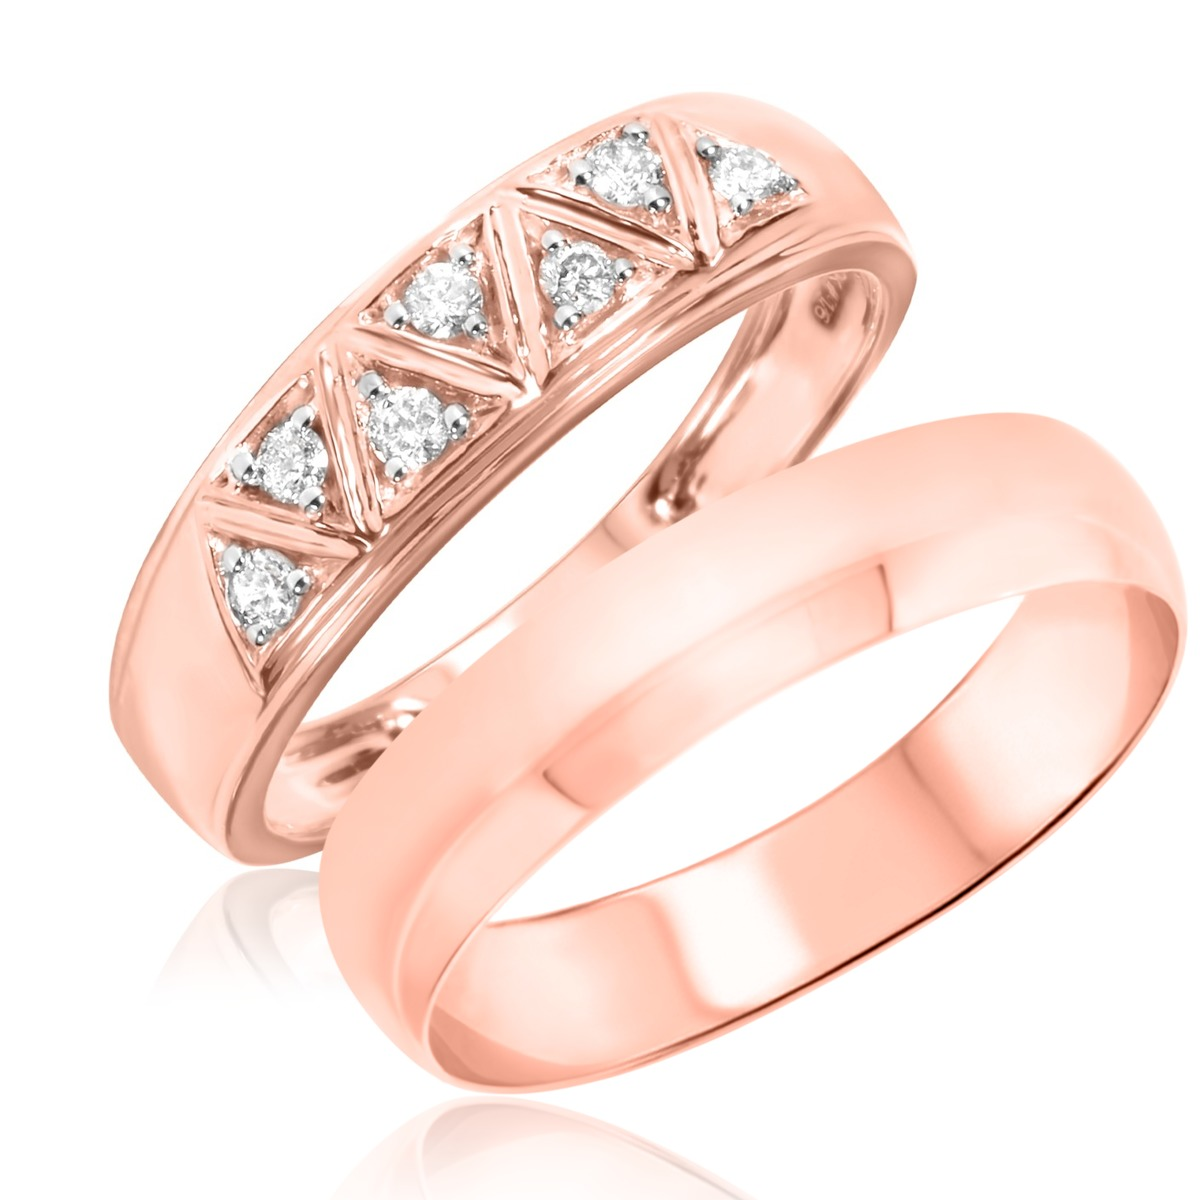 1/6 Carat T.W. Round Cut Diamond His and Hers Wedding Band Set 10K Rose Gold